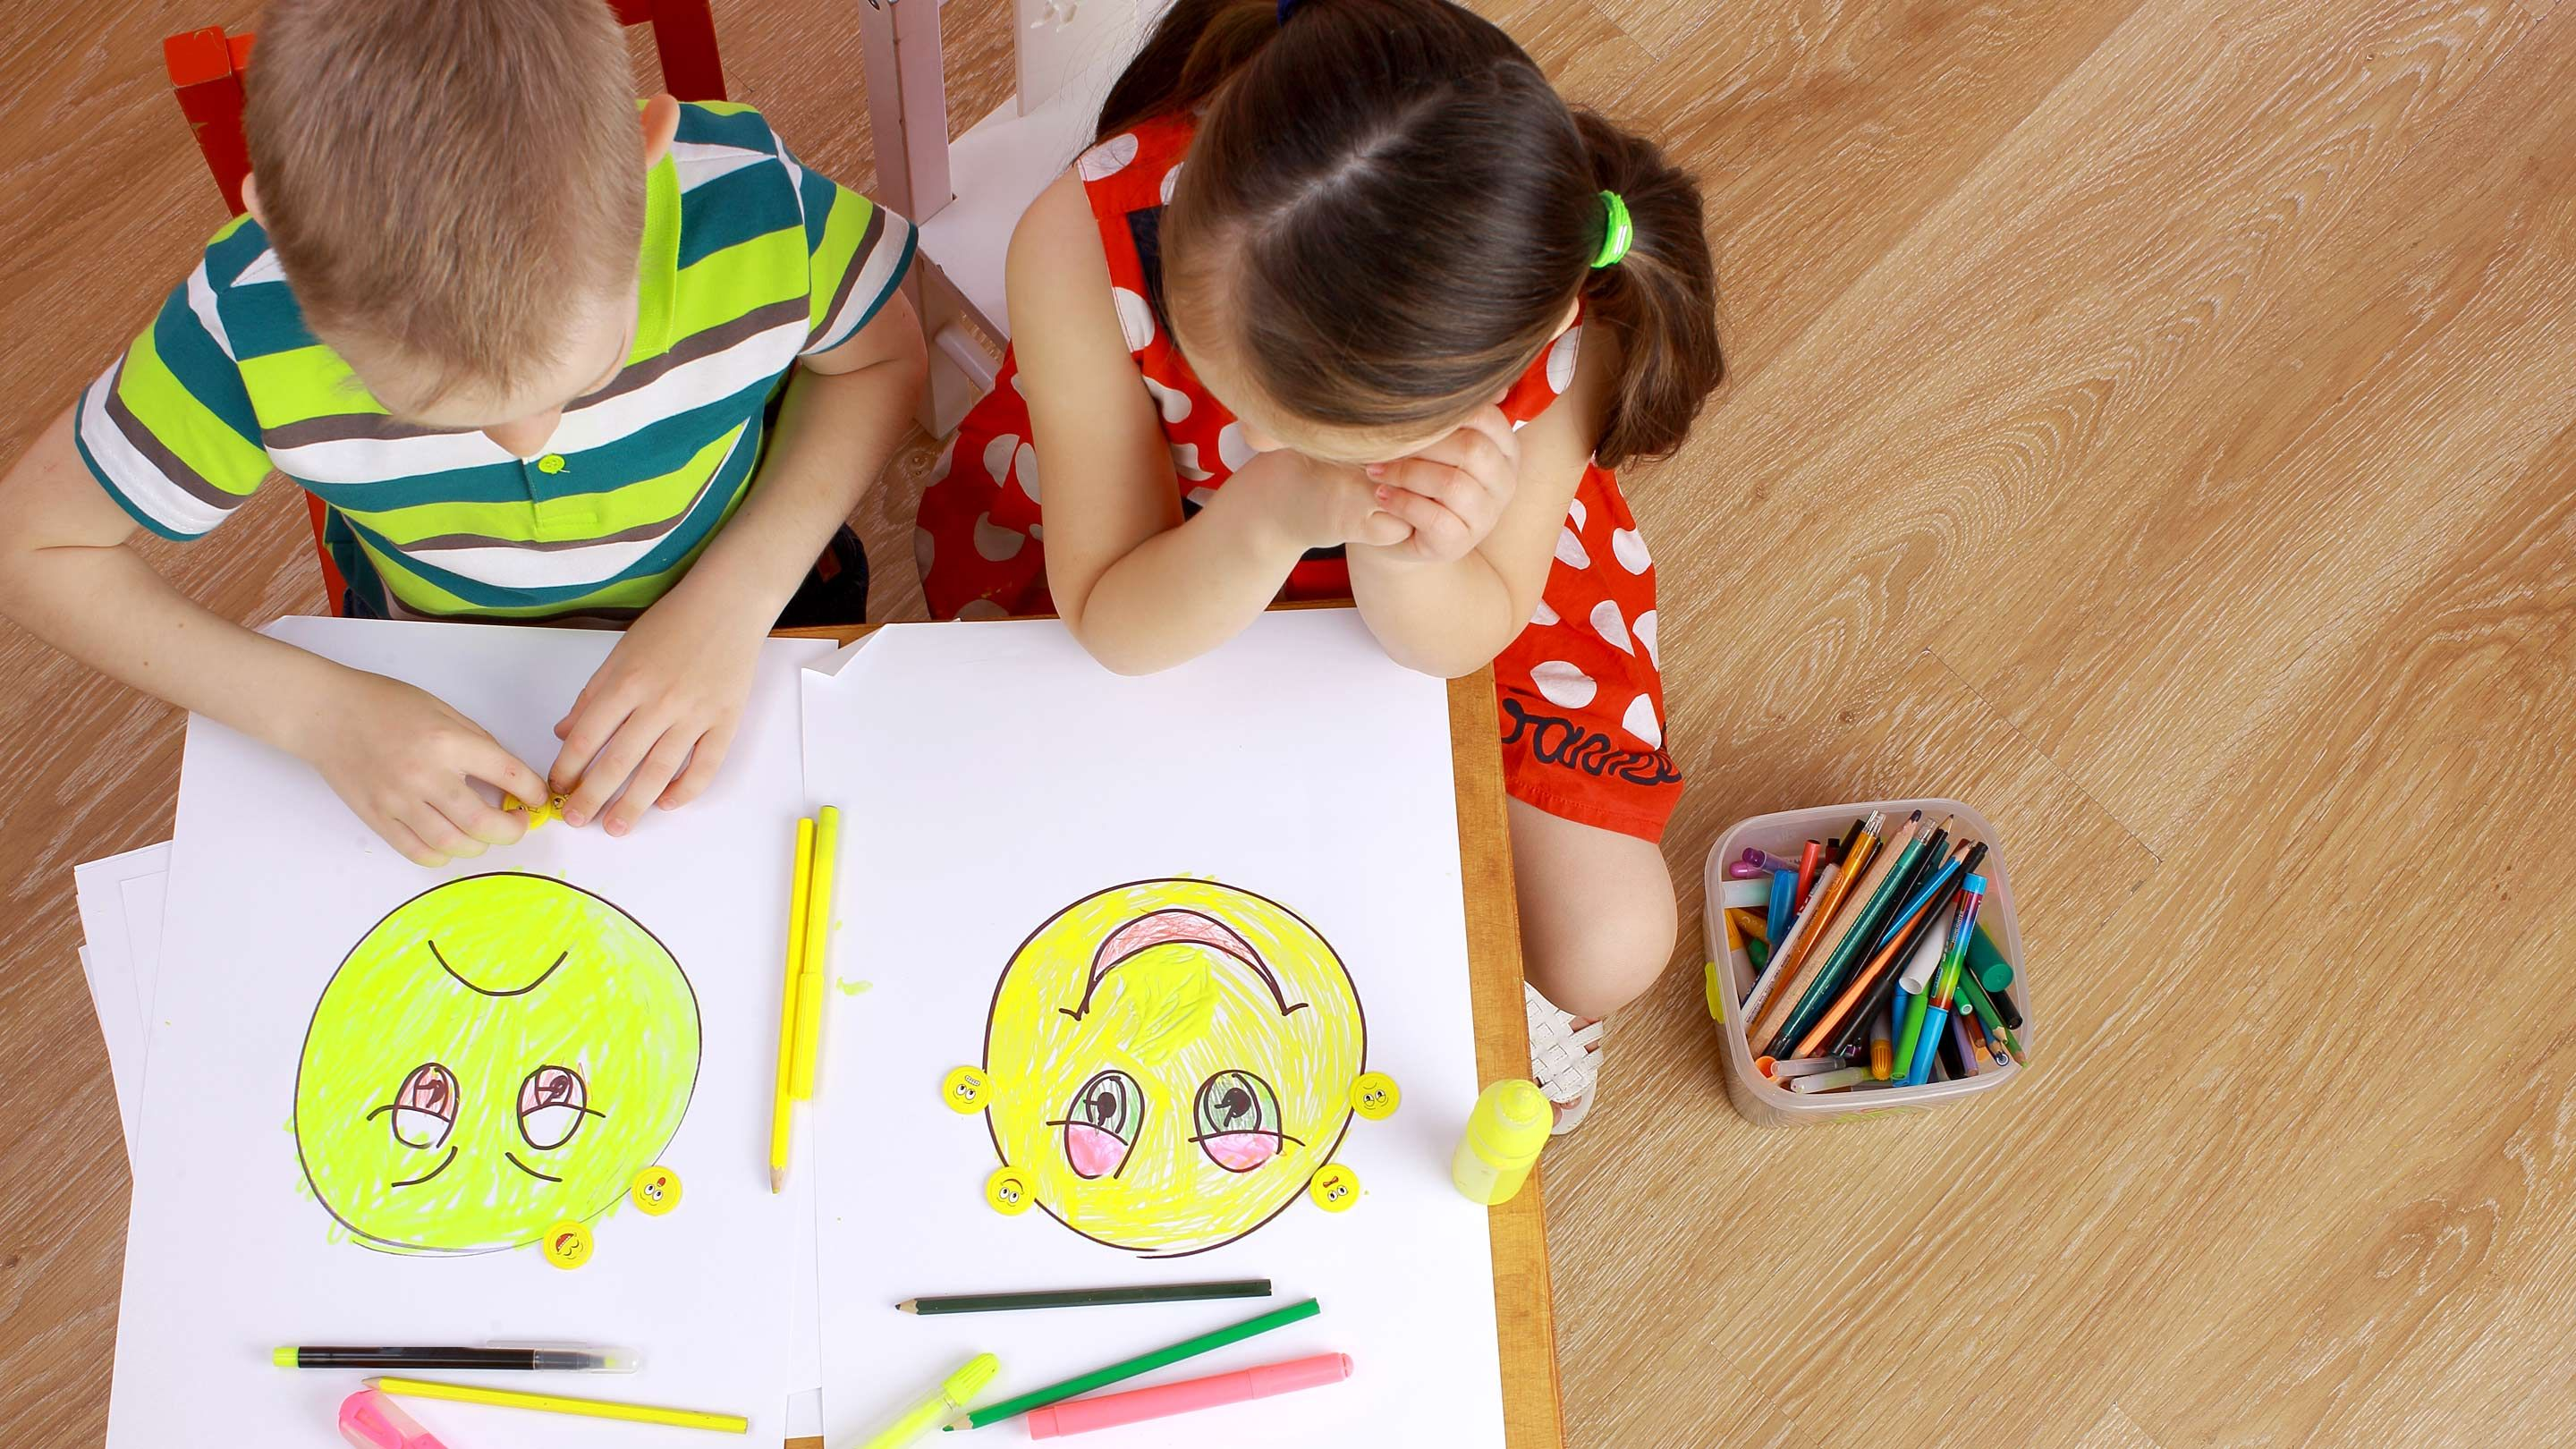 Two small children place facial expression stickers on drawings of a happy face and sad face.